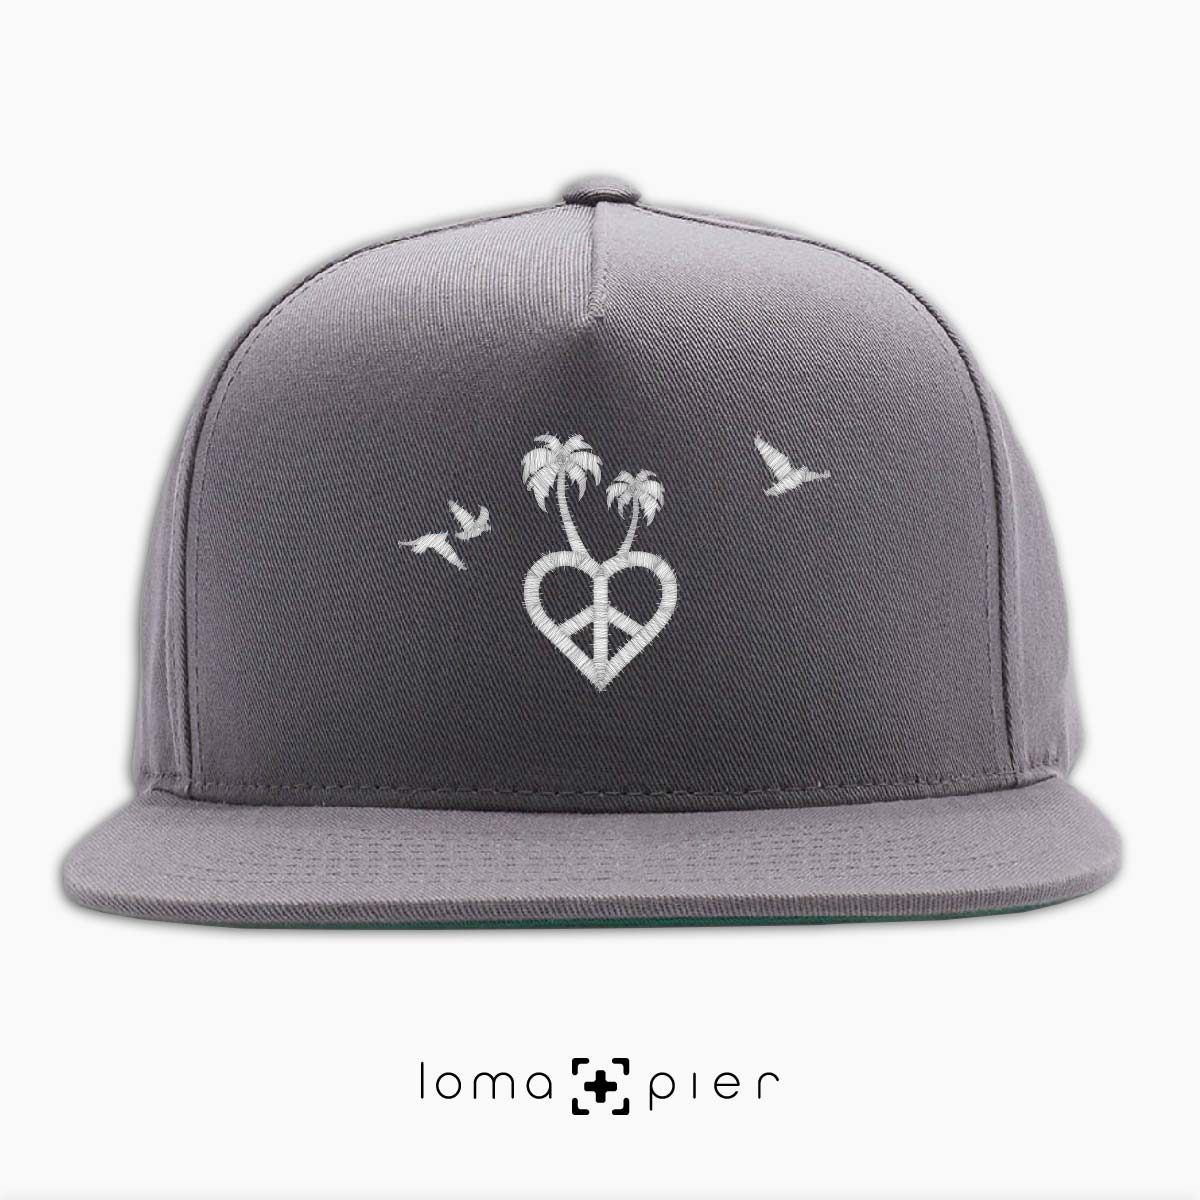 CALI VIBES icon embroidered on a grey classic snapback hat with white thread by loma+pier hat store